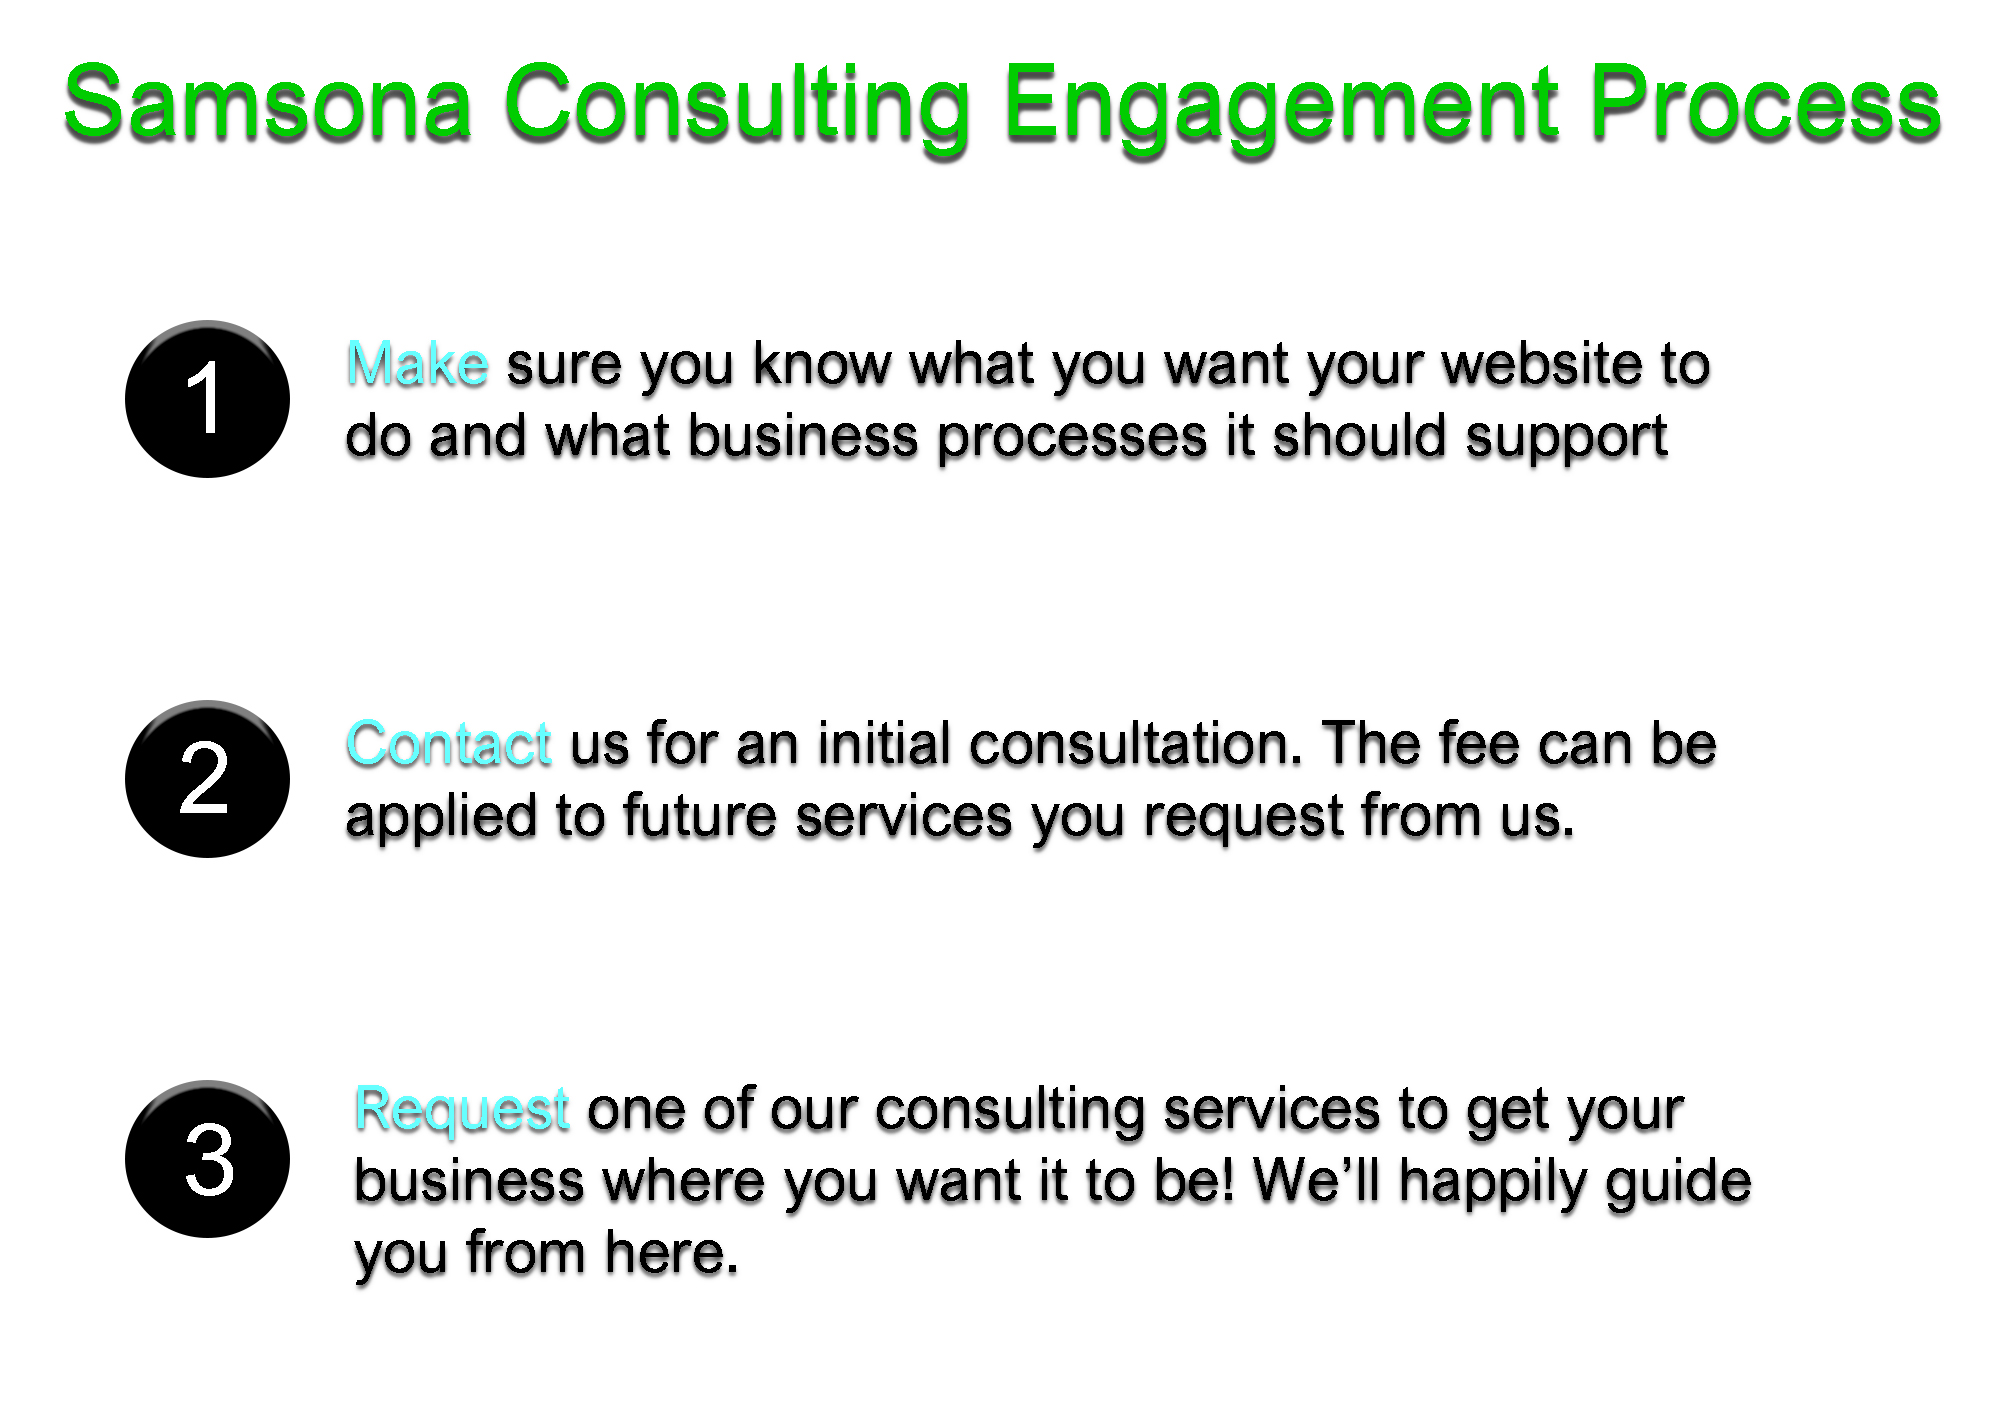 Samsona Consulting Engagement Process